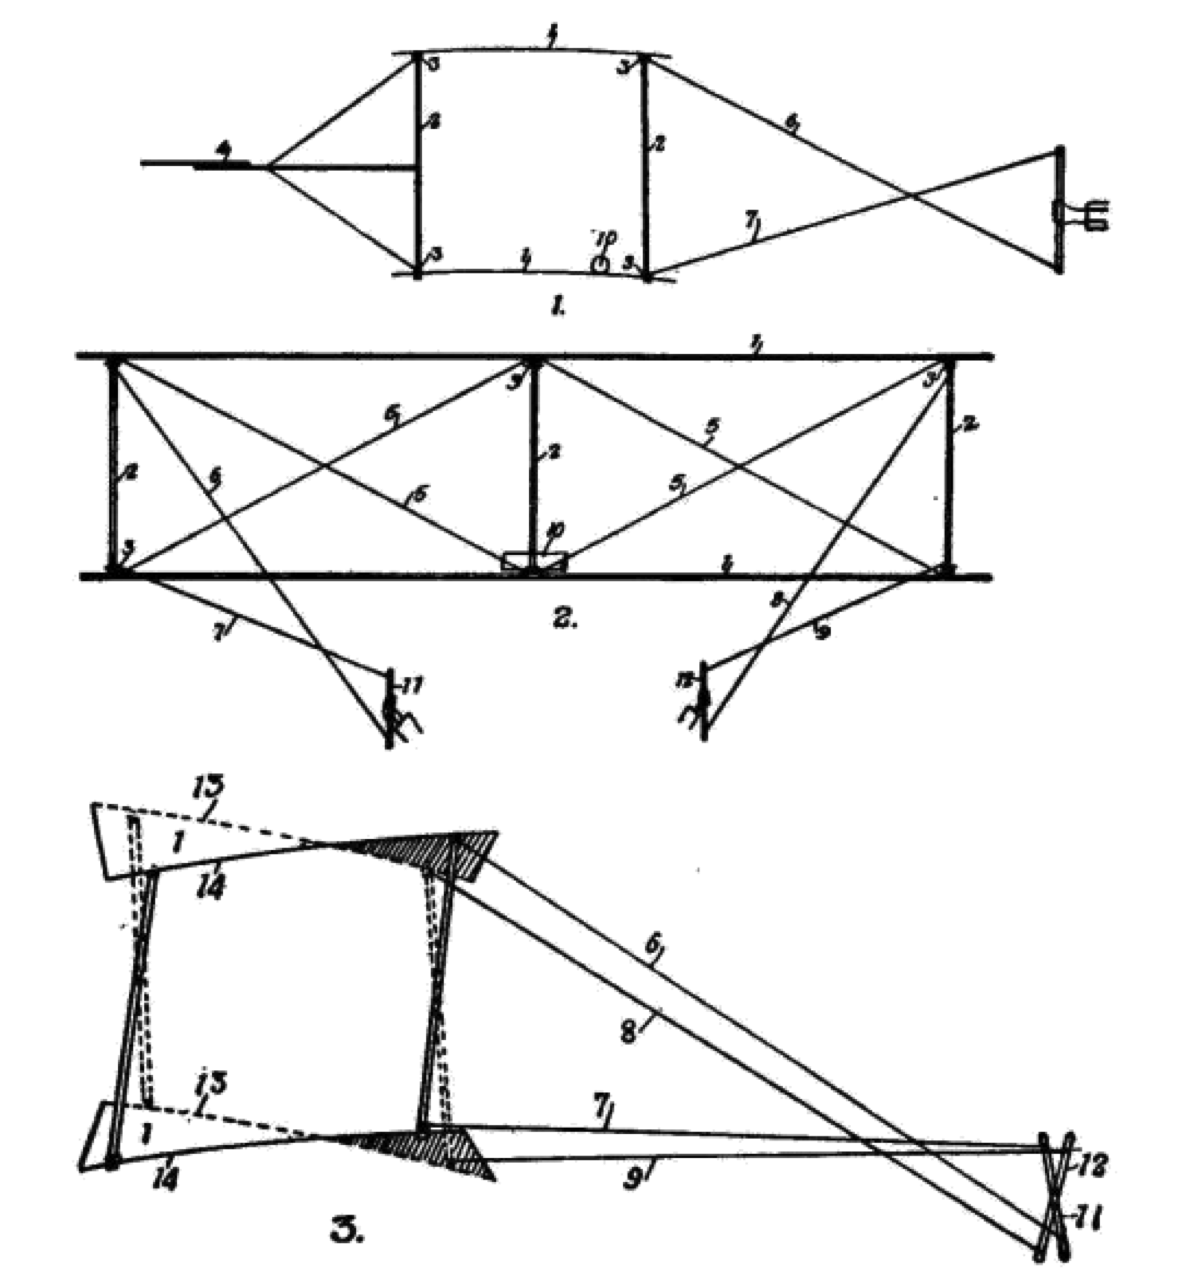 The Wrights patented their wing warping mechanism to control roll.